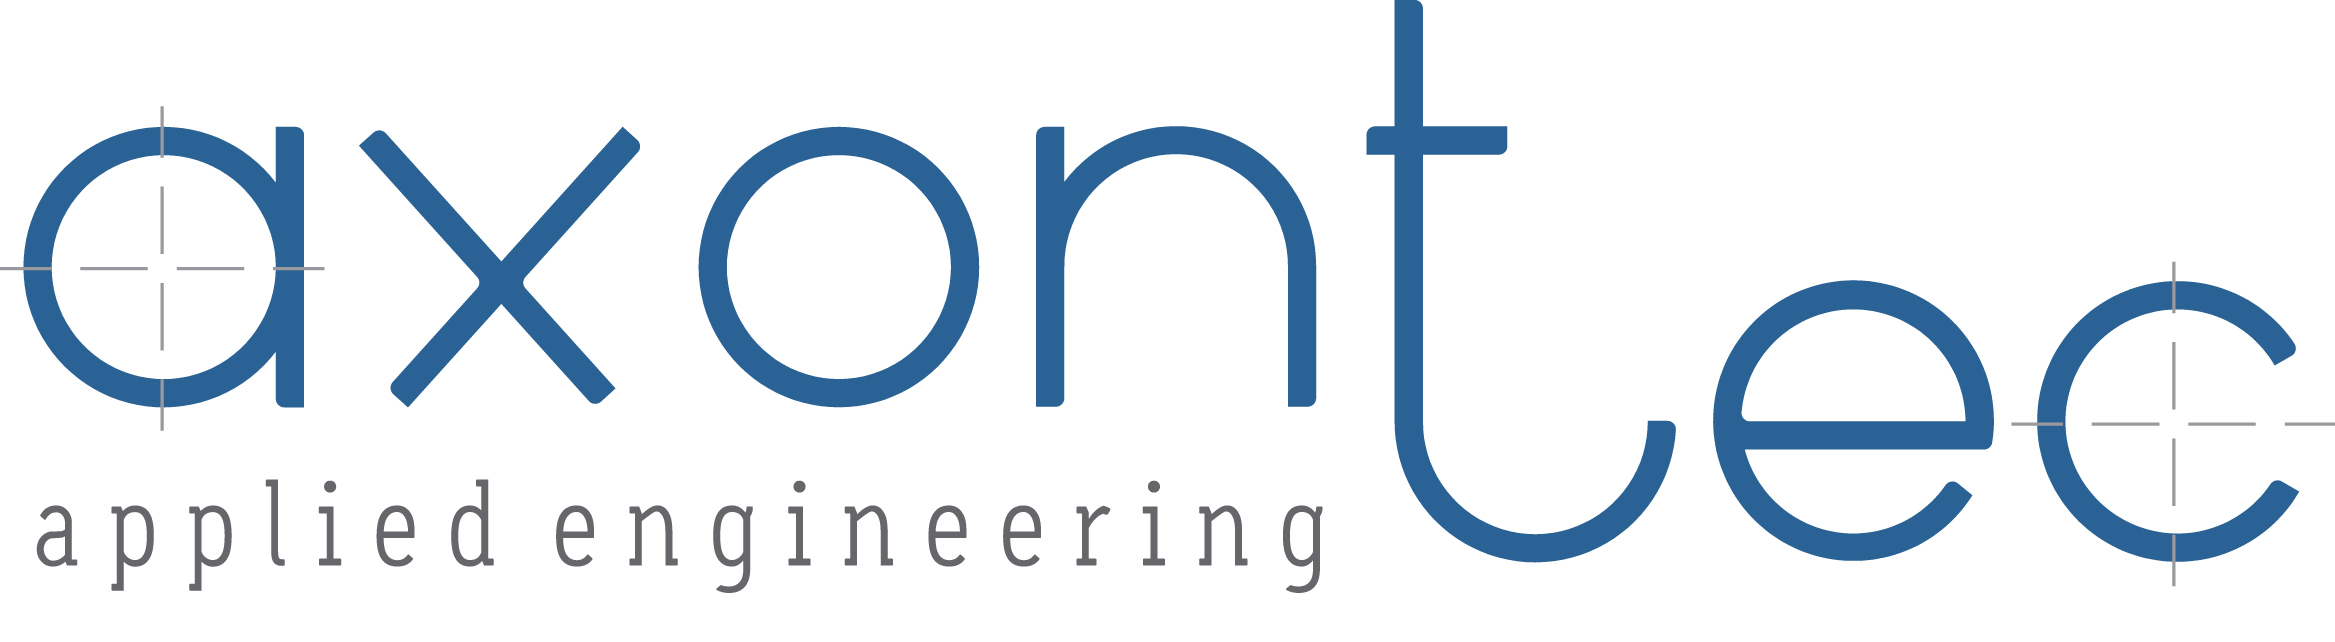 Axontec Applied Engineering